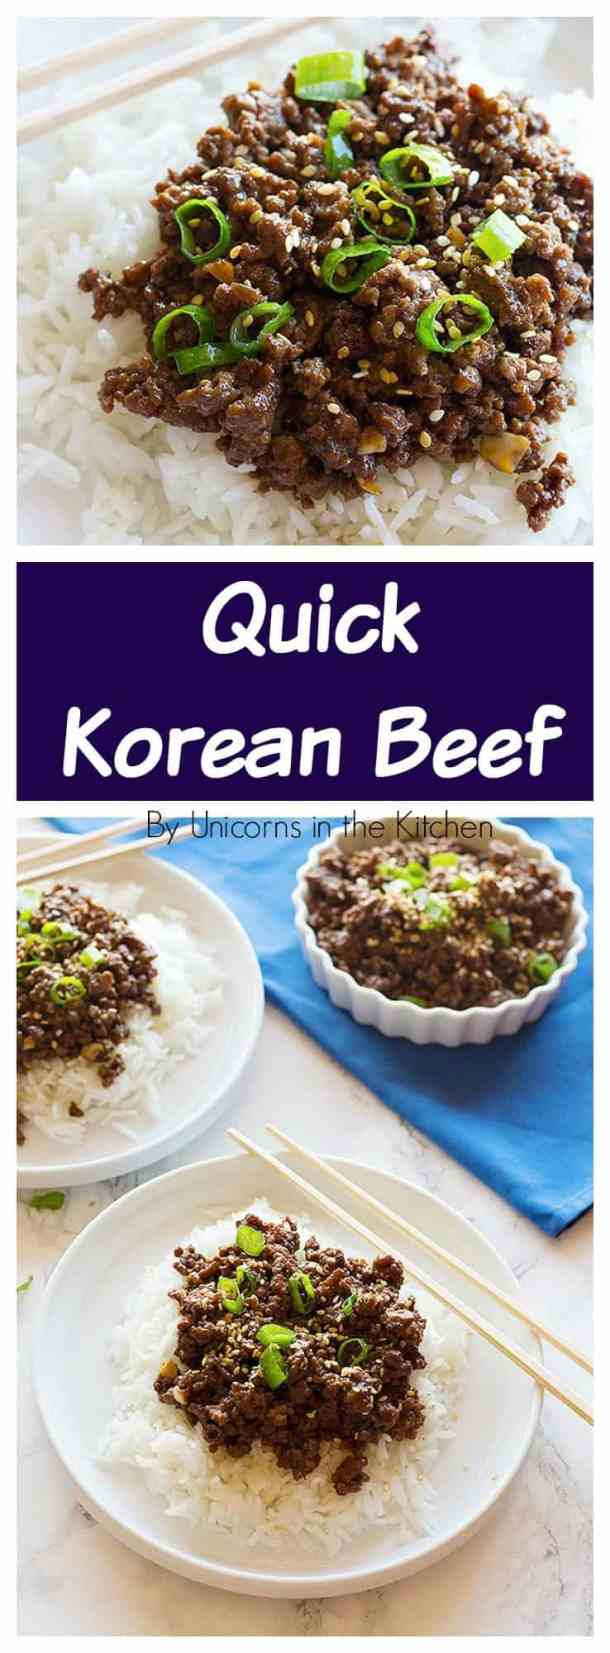 Quick Korean Beef is a family favorite that comes together in less than 25 minutes and tastes better than take out. Serve it over Jasmine rice and have a full meal in no time.